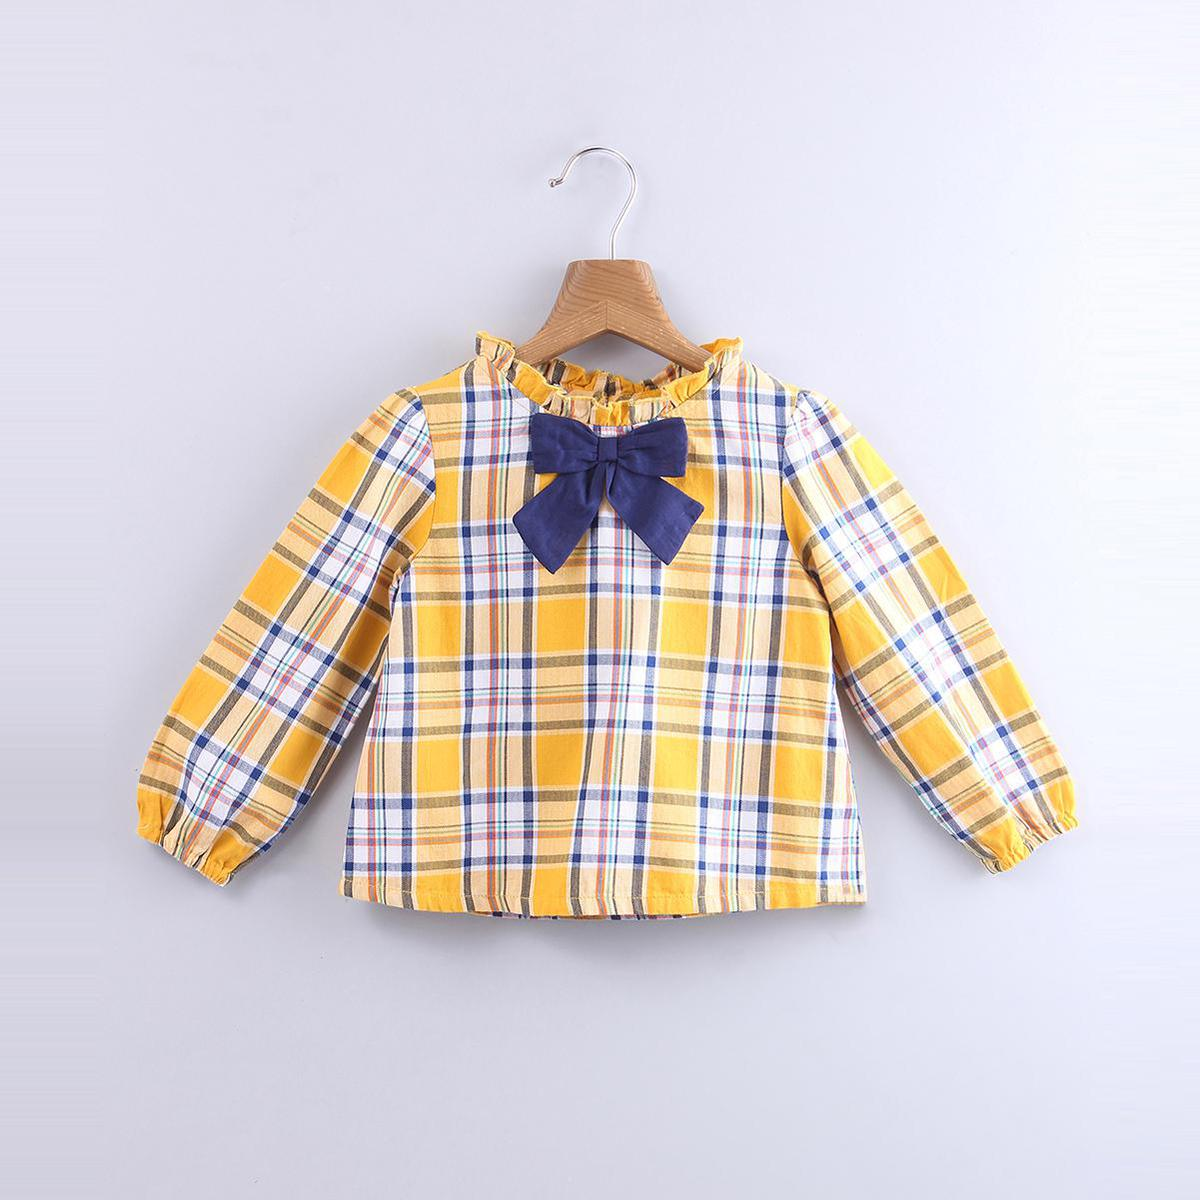 Beebay - Yellow Colored Y/D Check Bow Cotton Top For Infants Girls